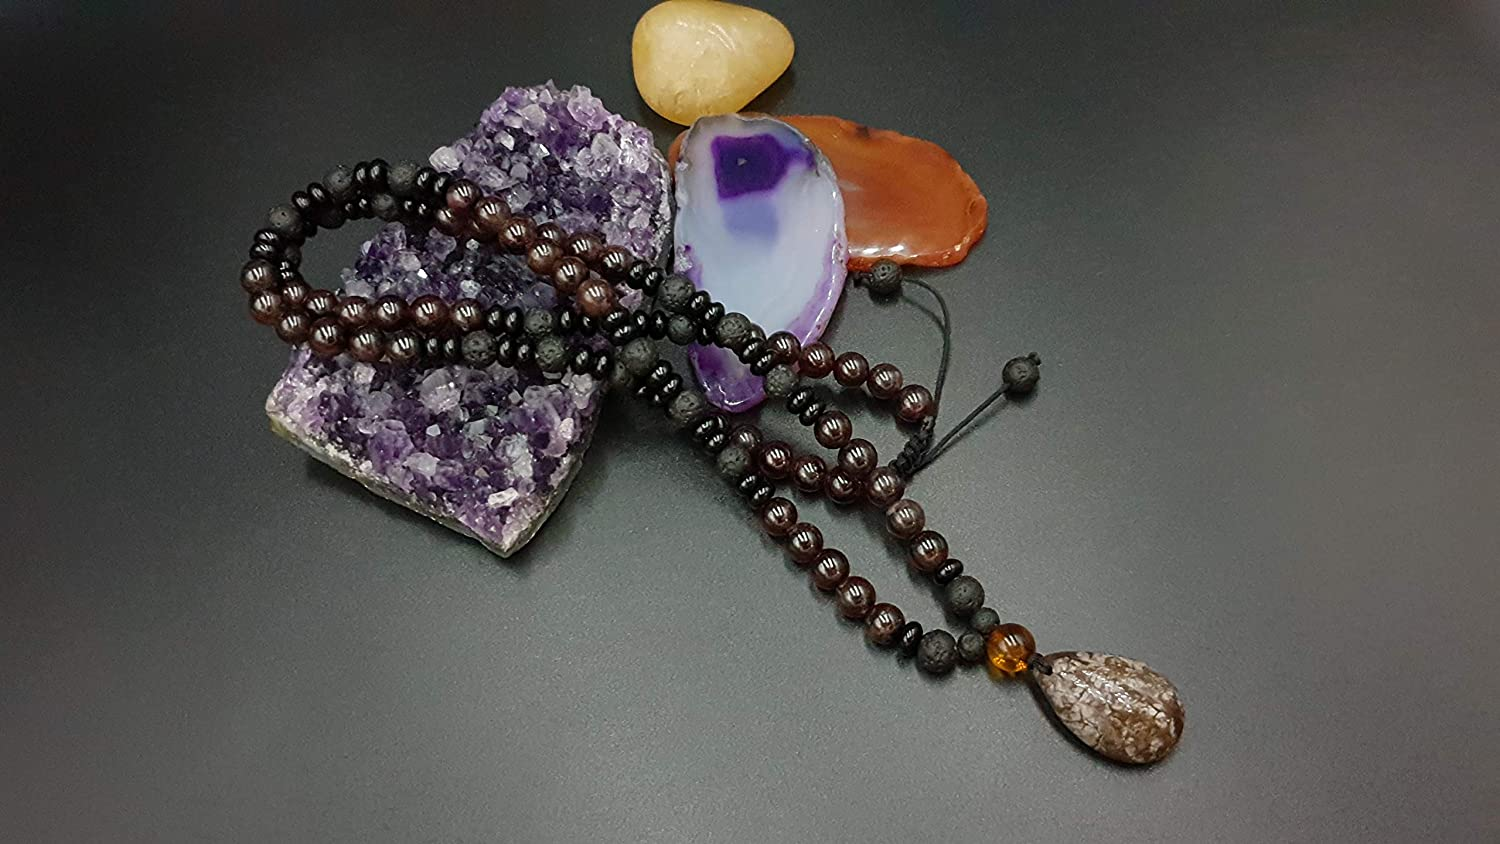 Max 78% OFF Jewelry Raleigh Mall Necklace Natural Stones Granet Lava Obsi and Onyx beads